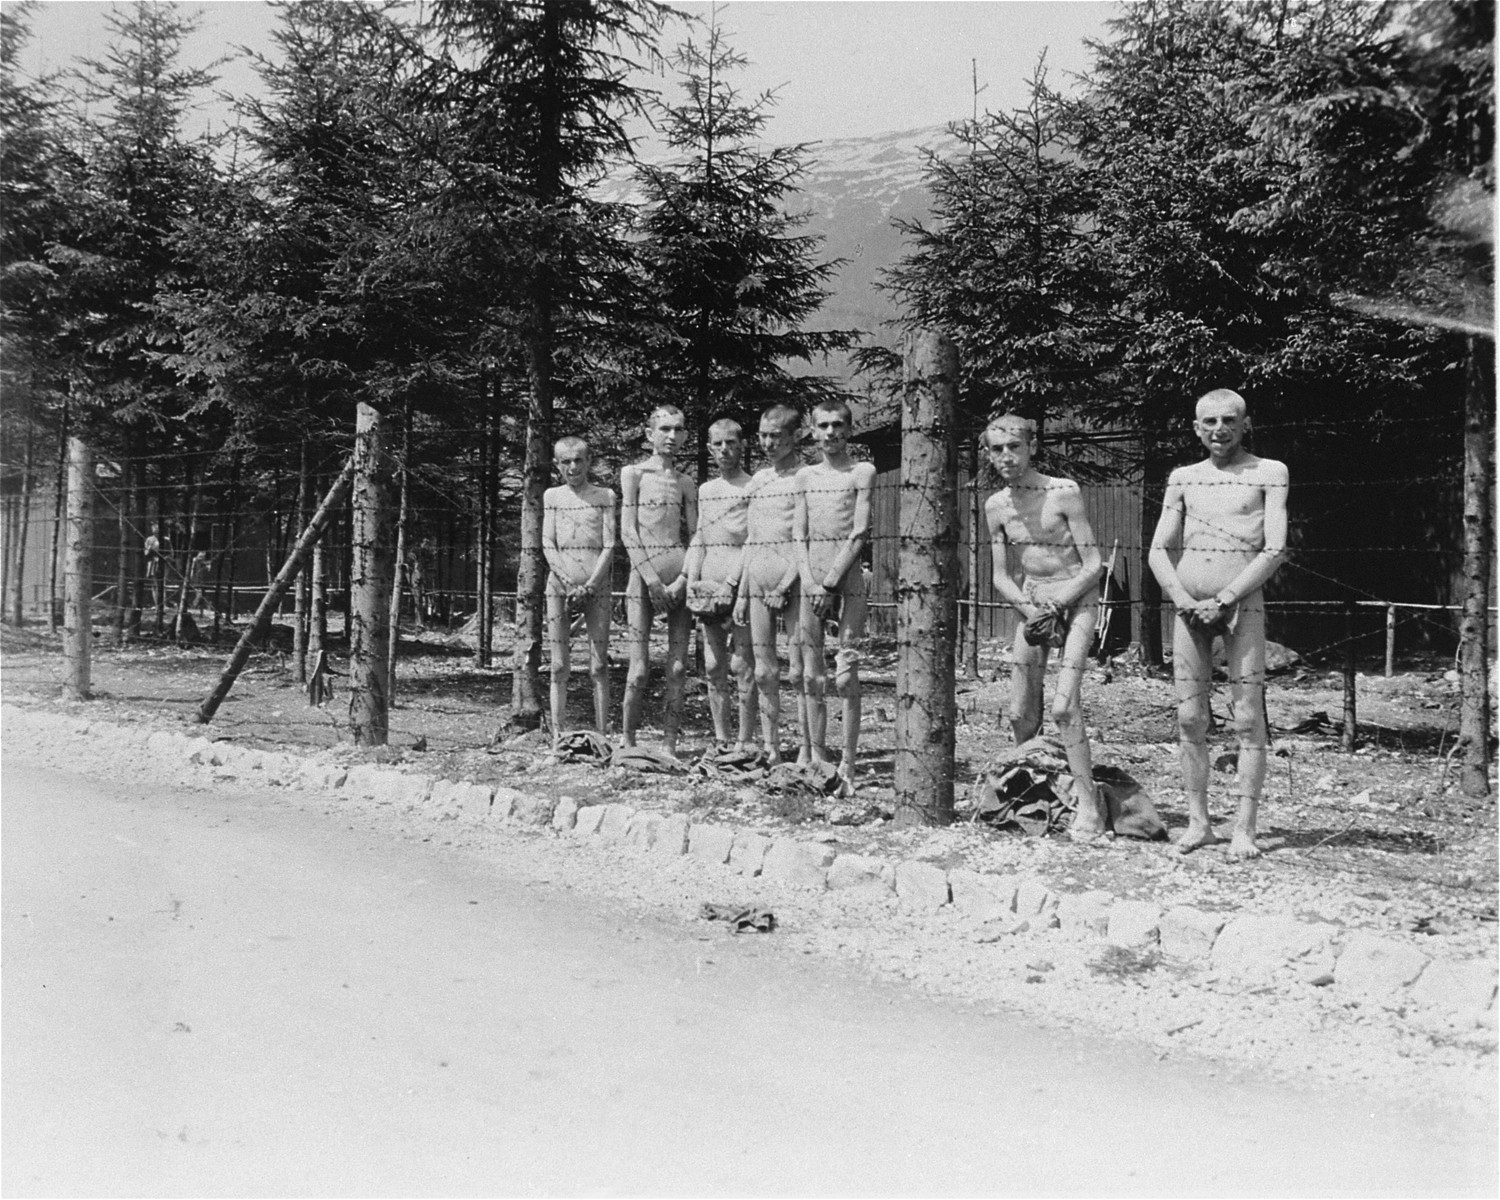 Seven emaciated survivors stand naked behind the barbed wire enclosure of the hospital compound in Ebensee.